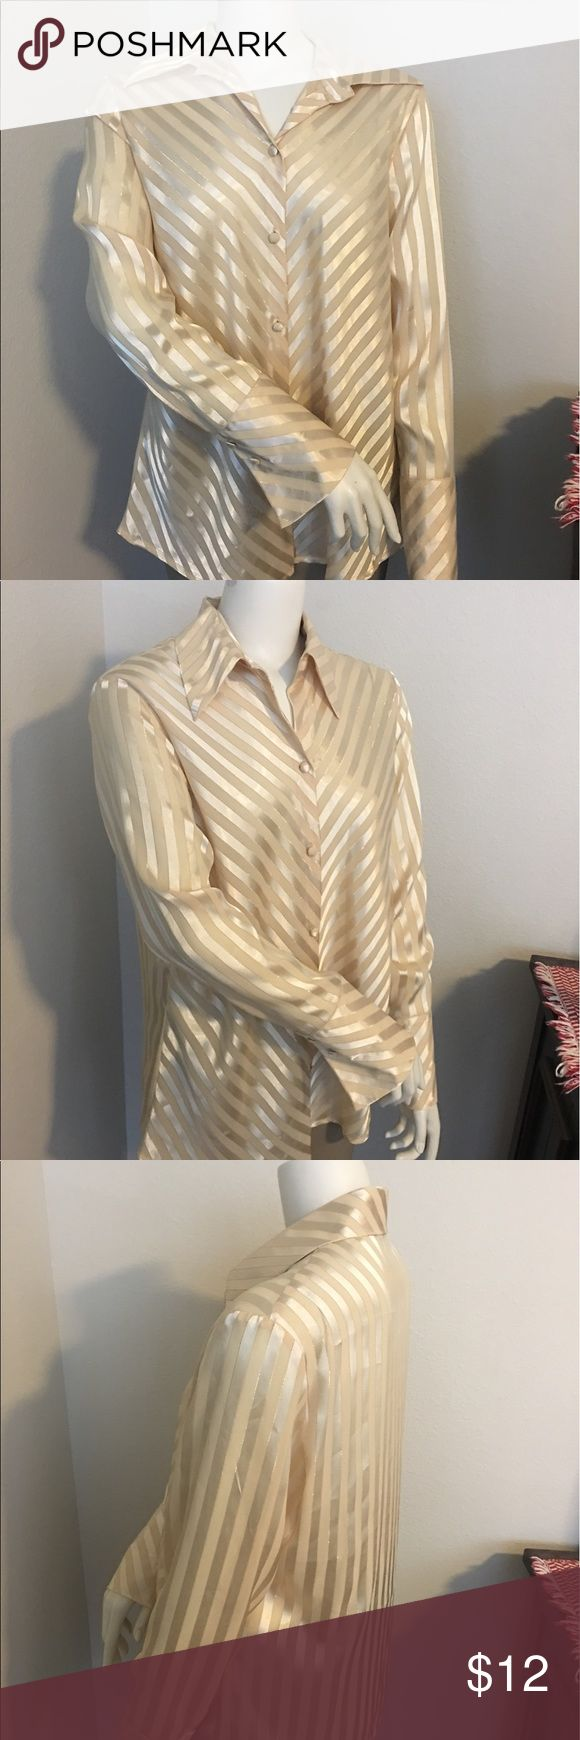 "Nygard womens gold LS button up/down shirt sz: 14 Thank you for viewing my listing, for sale is a women's, longsleeve, button up/down, gold striped, NYGARD Shirt/blouse.  Plus size, size 14.  If you have any questions or would like additional photos please feel free to ask.  From under one arm to under the other measures appx 23"" from the top of the shoulder to the bottom of the shirt measures appx 29"" NYGard Tops Button Down Shirts"